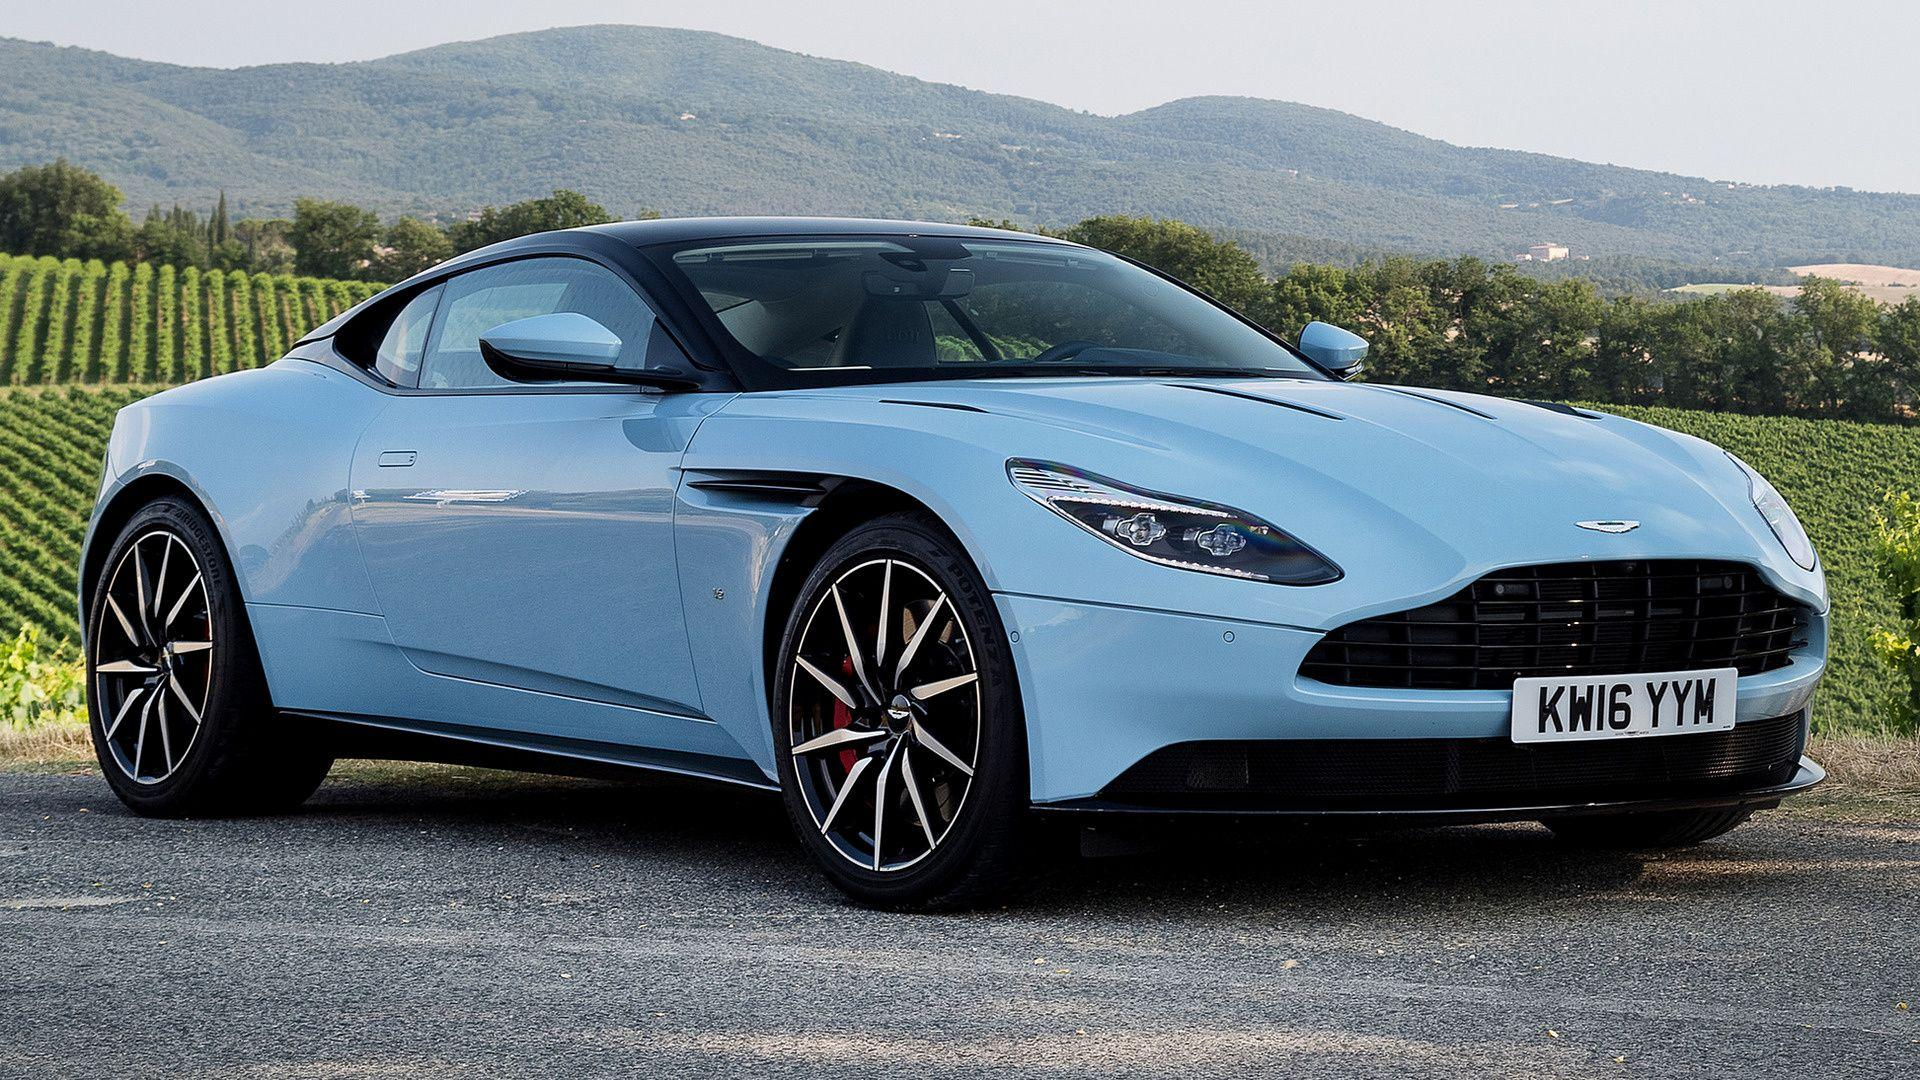 Aston Martin DB11 (2016) Wallpapers and HD Images - Car Pixel